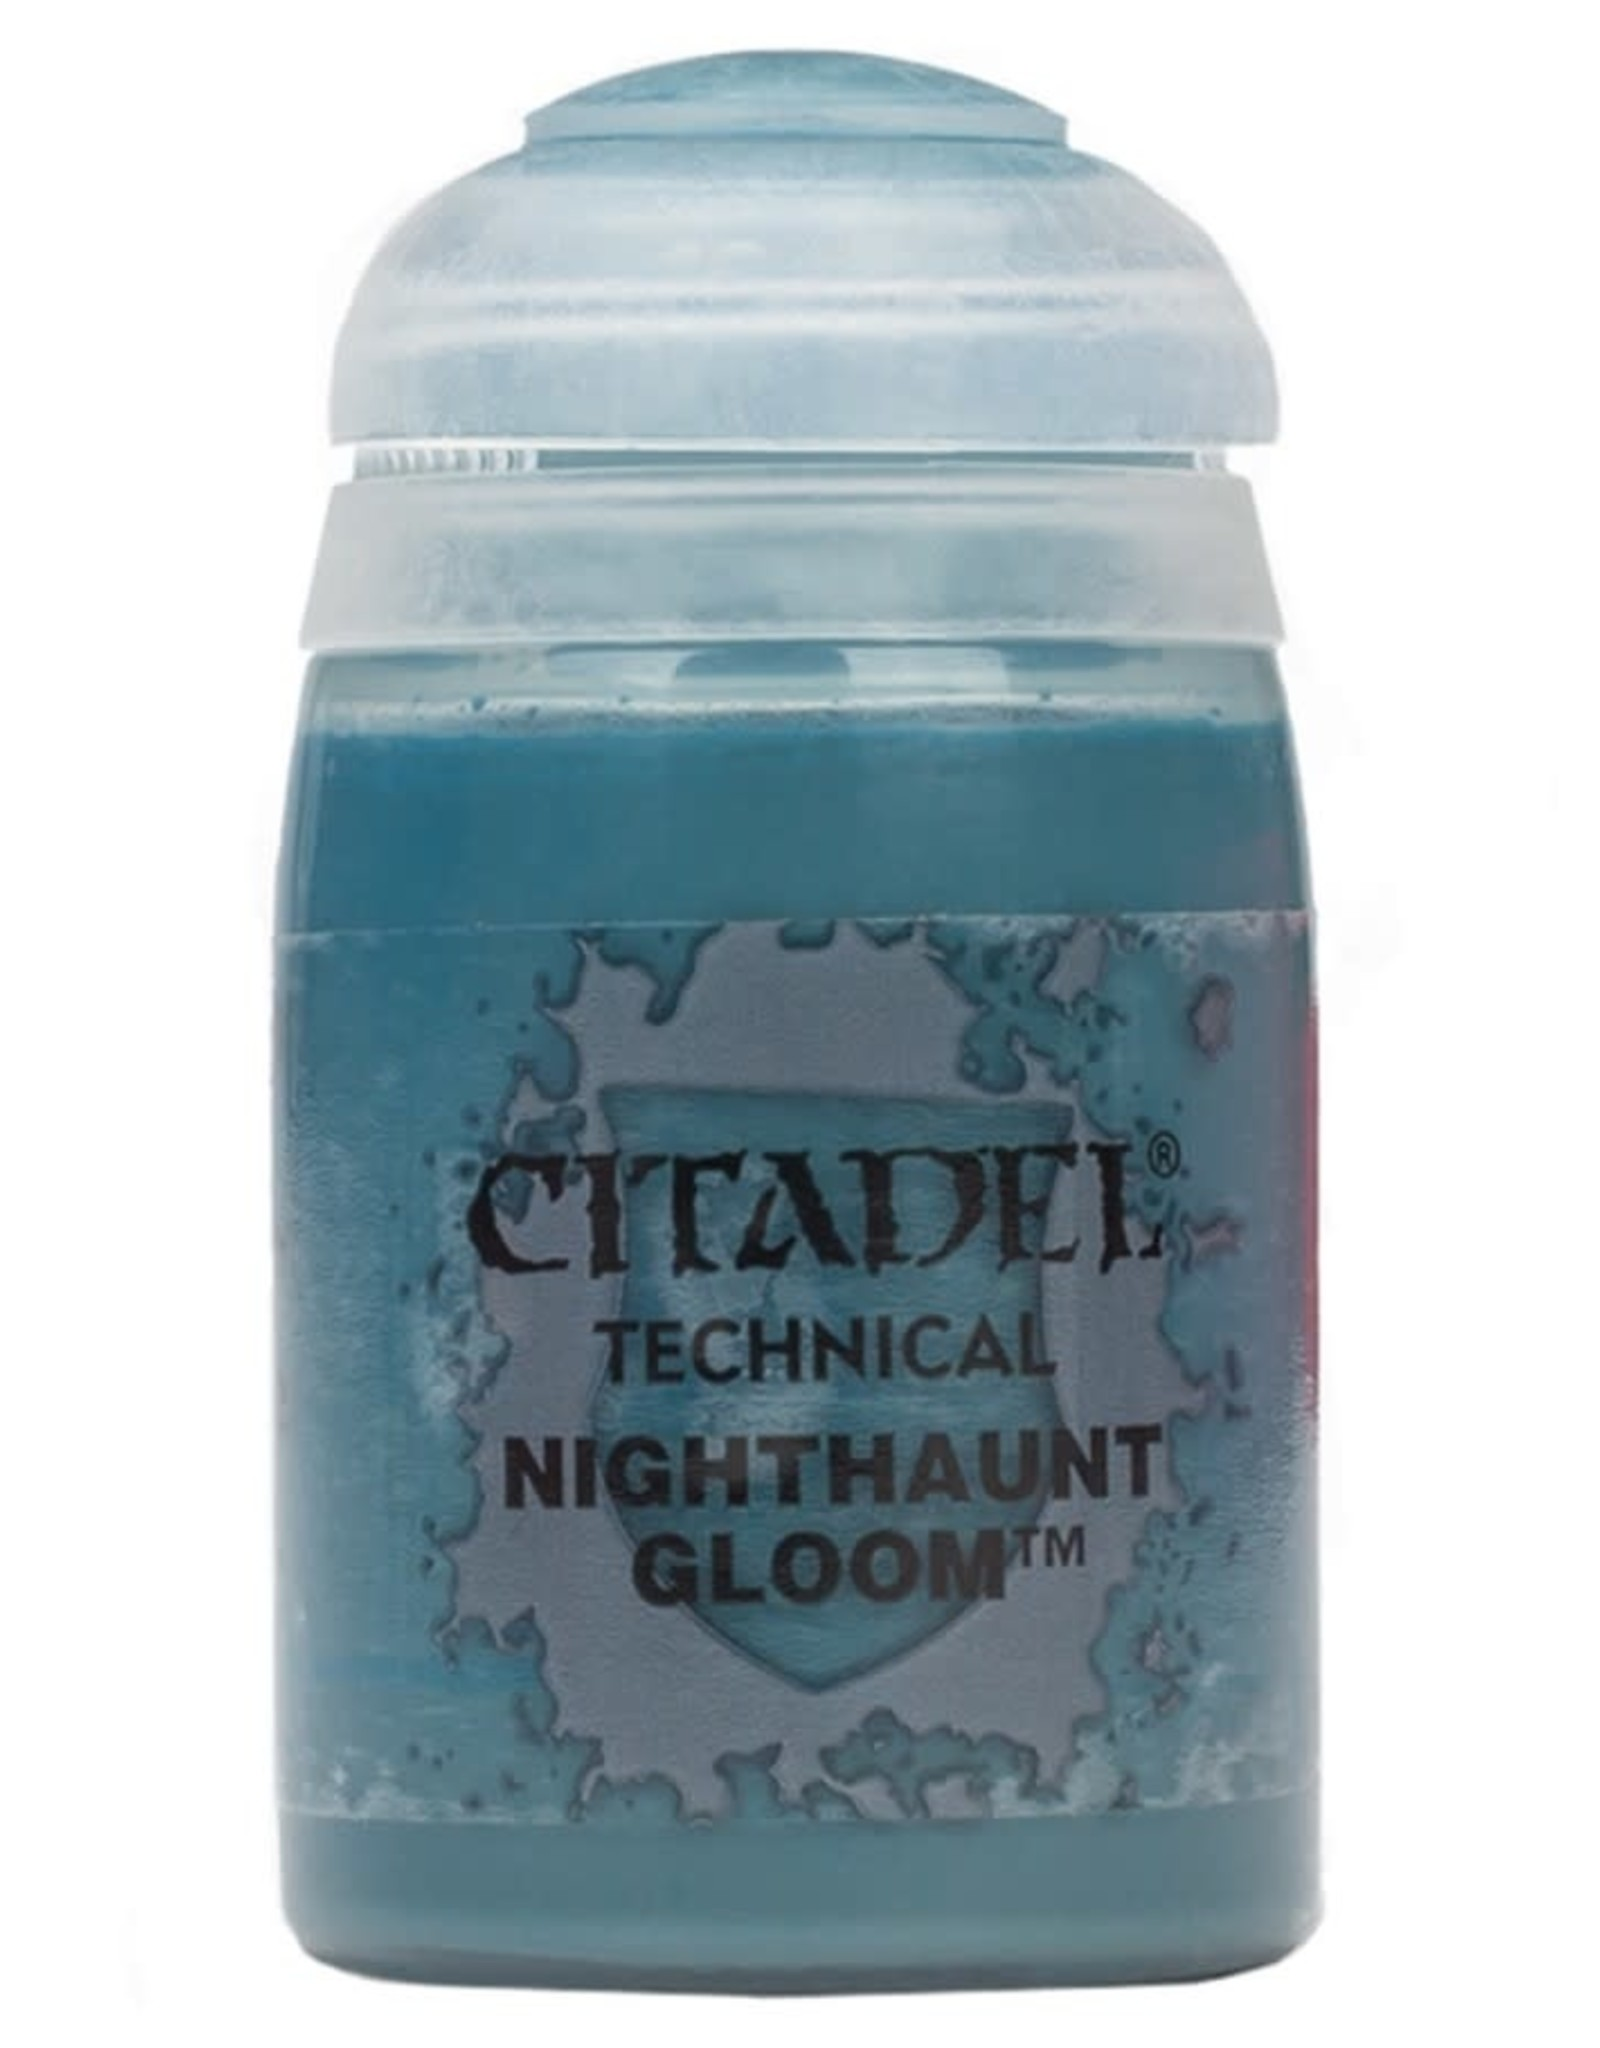 Citadel Technical Paint: Nighthaunt Gloom